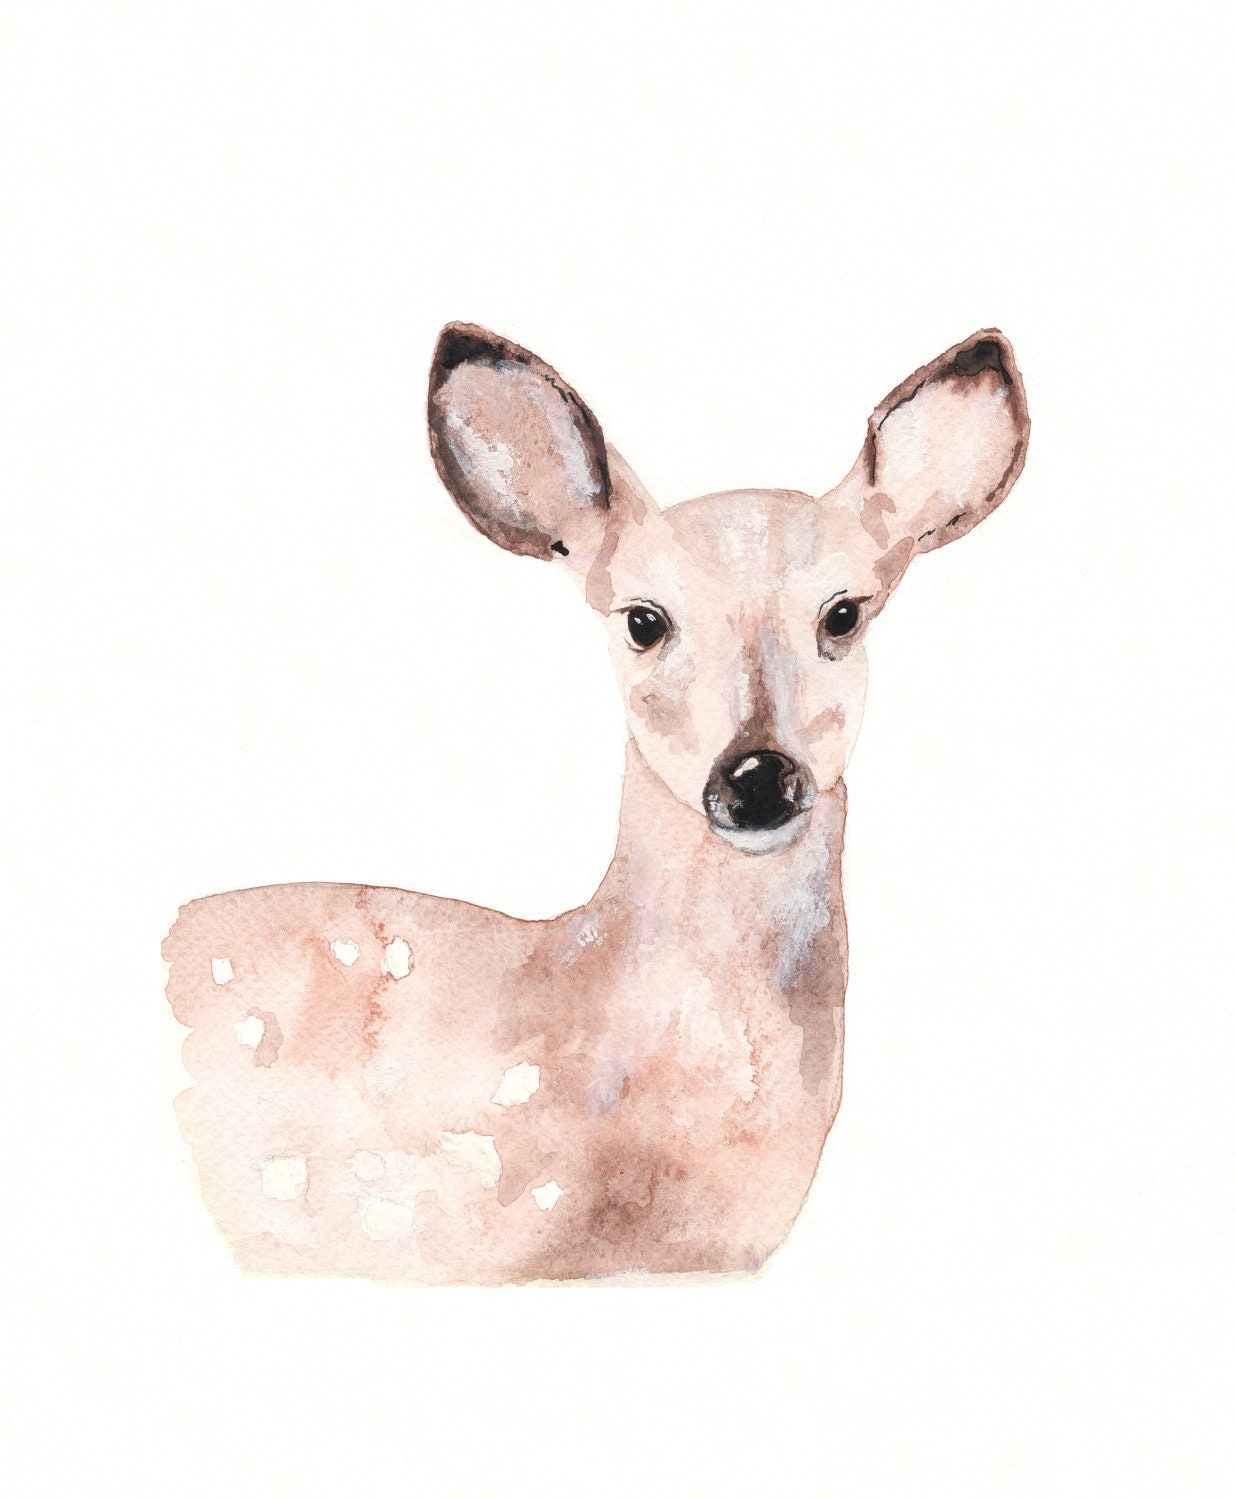 Fawn/Deer/Tan/Cream/Beige/Brown / Archival Watercolor Print - kellybermudez